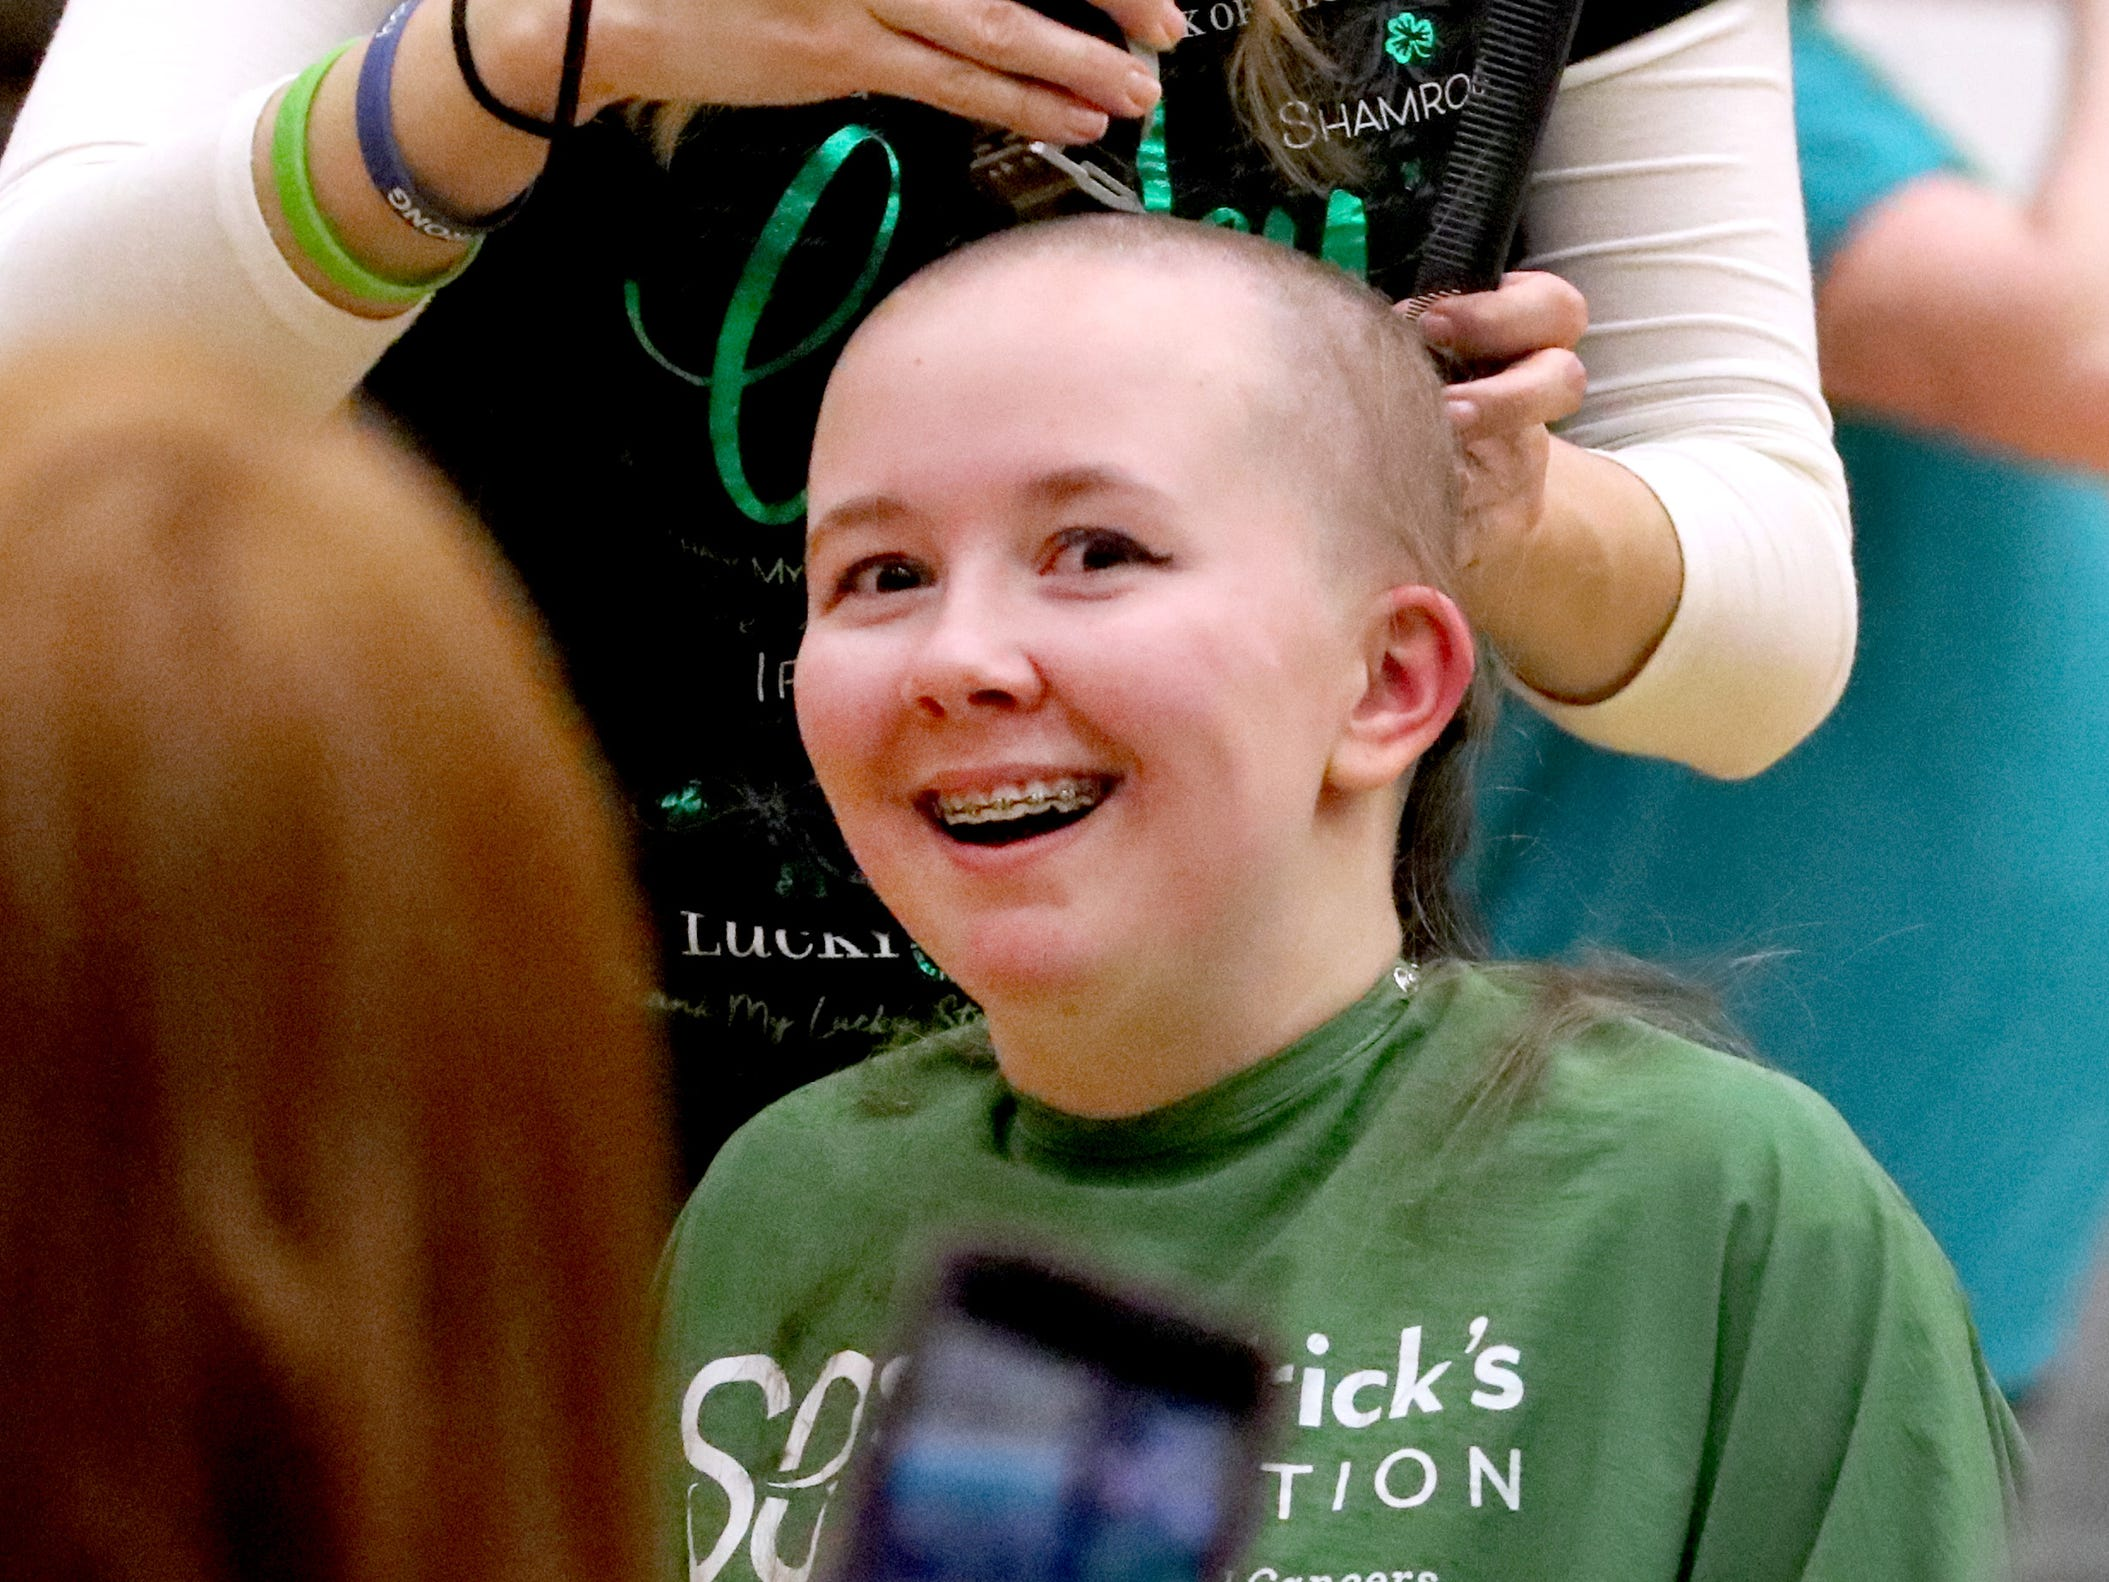 Riverdalesenior Annika Clarey reacts as she gets her head shaved during Riverdale High School's sixth annual Brave the Shave fundraiser to benefit St. Baldrick's Foundation on Thursday, March 21, 2019. The organization raises funds and awareness for childhood cancer.